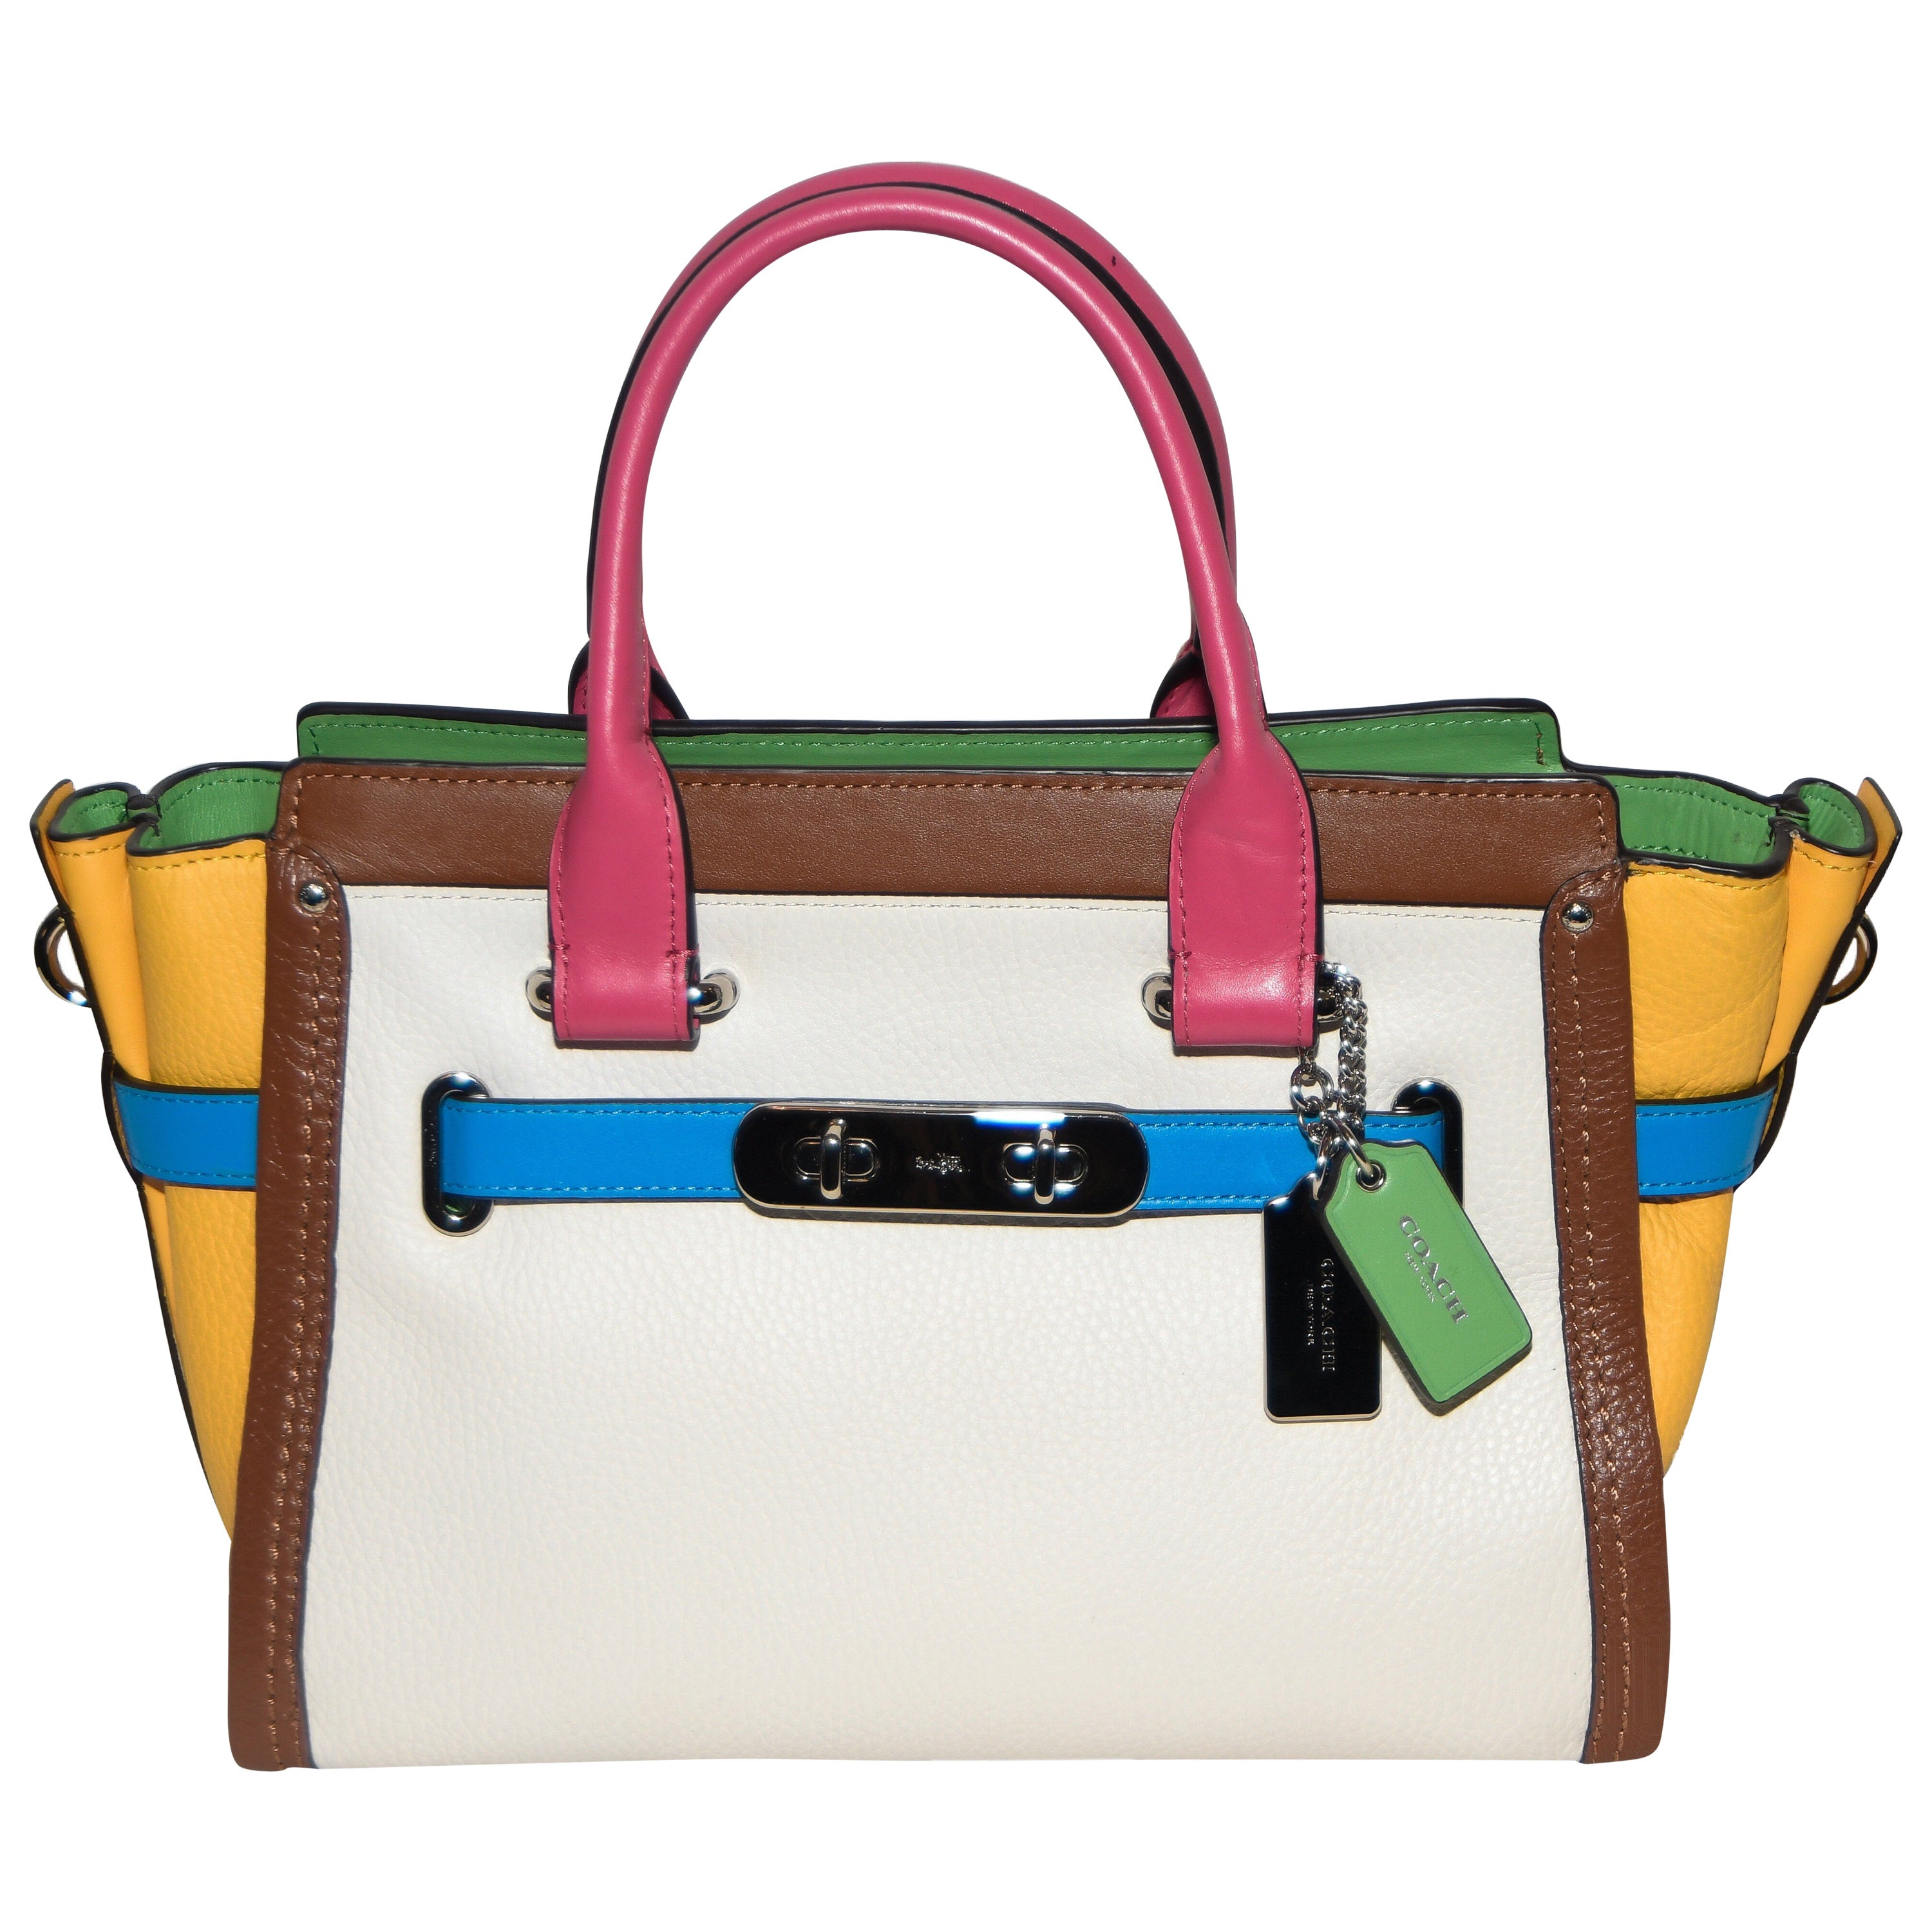 b9be48e2f5 Coach swagger rainbow leather colorblock satchel for sale at stdibs jpg  3000x3000 Swagger coach tote